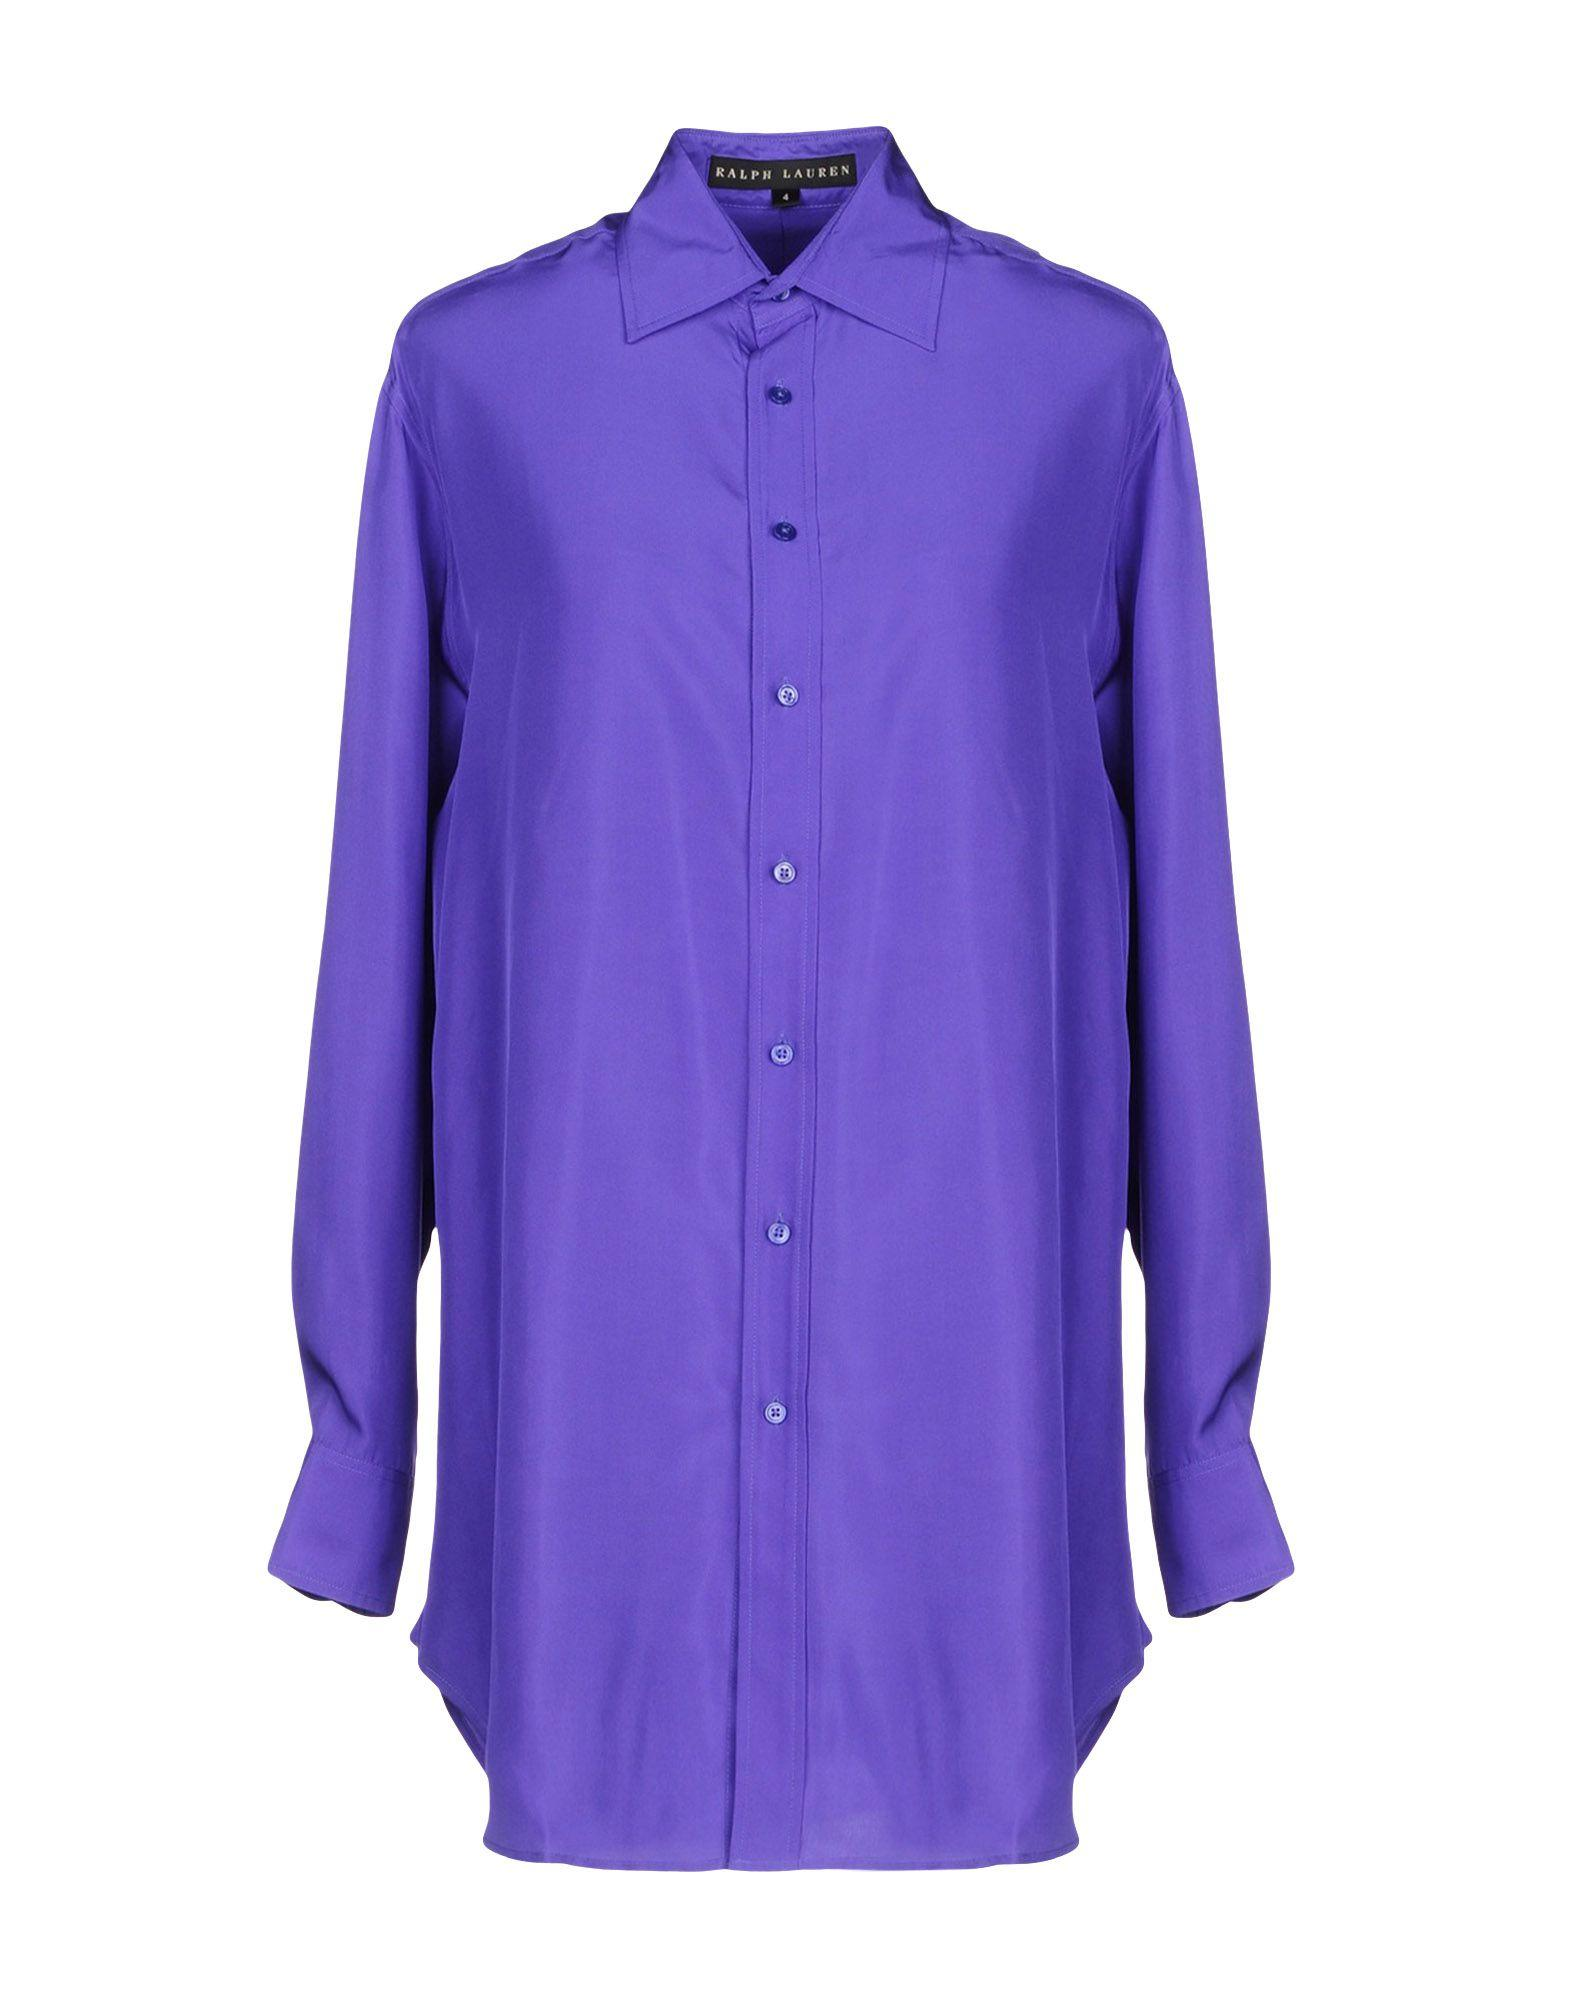 Ralph Lauren Silk Shirts & Blouses In Purple